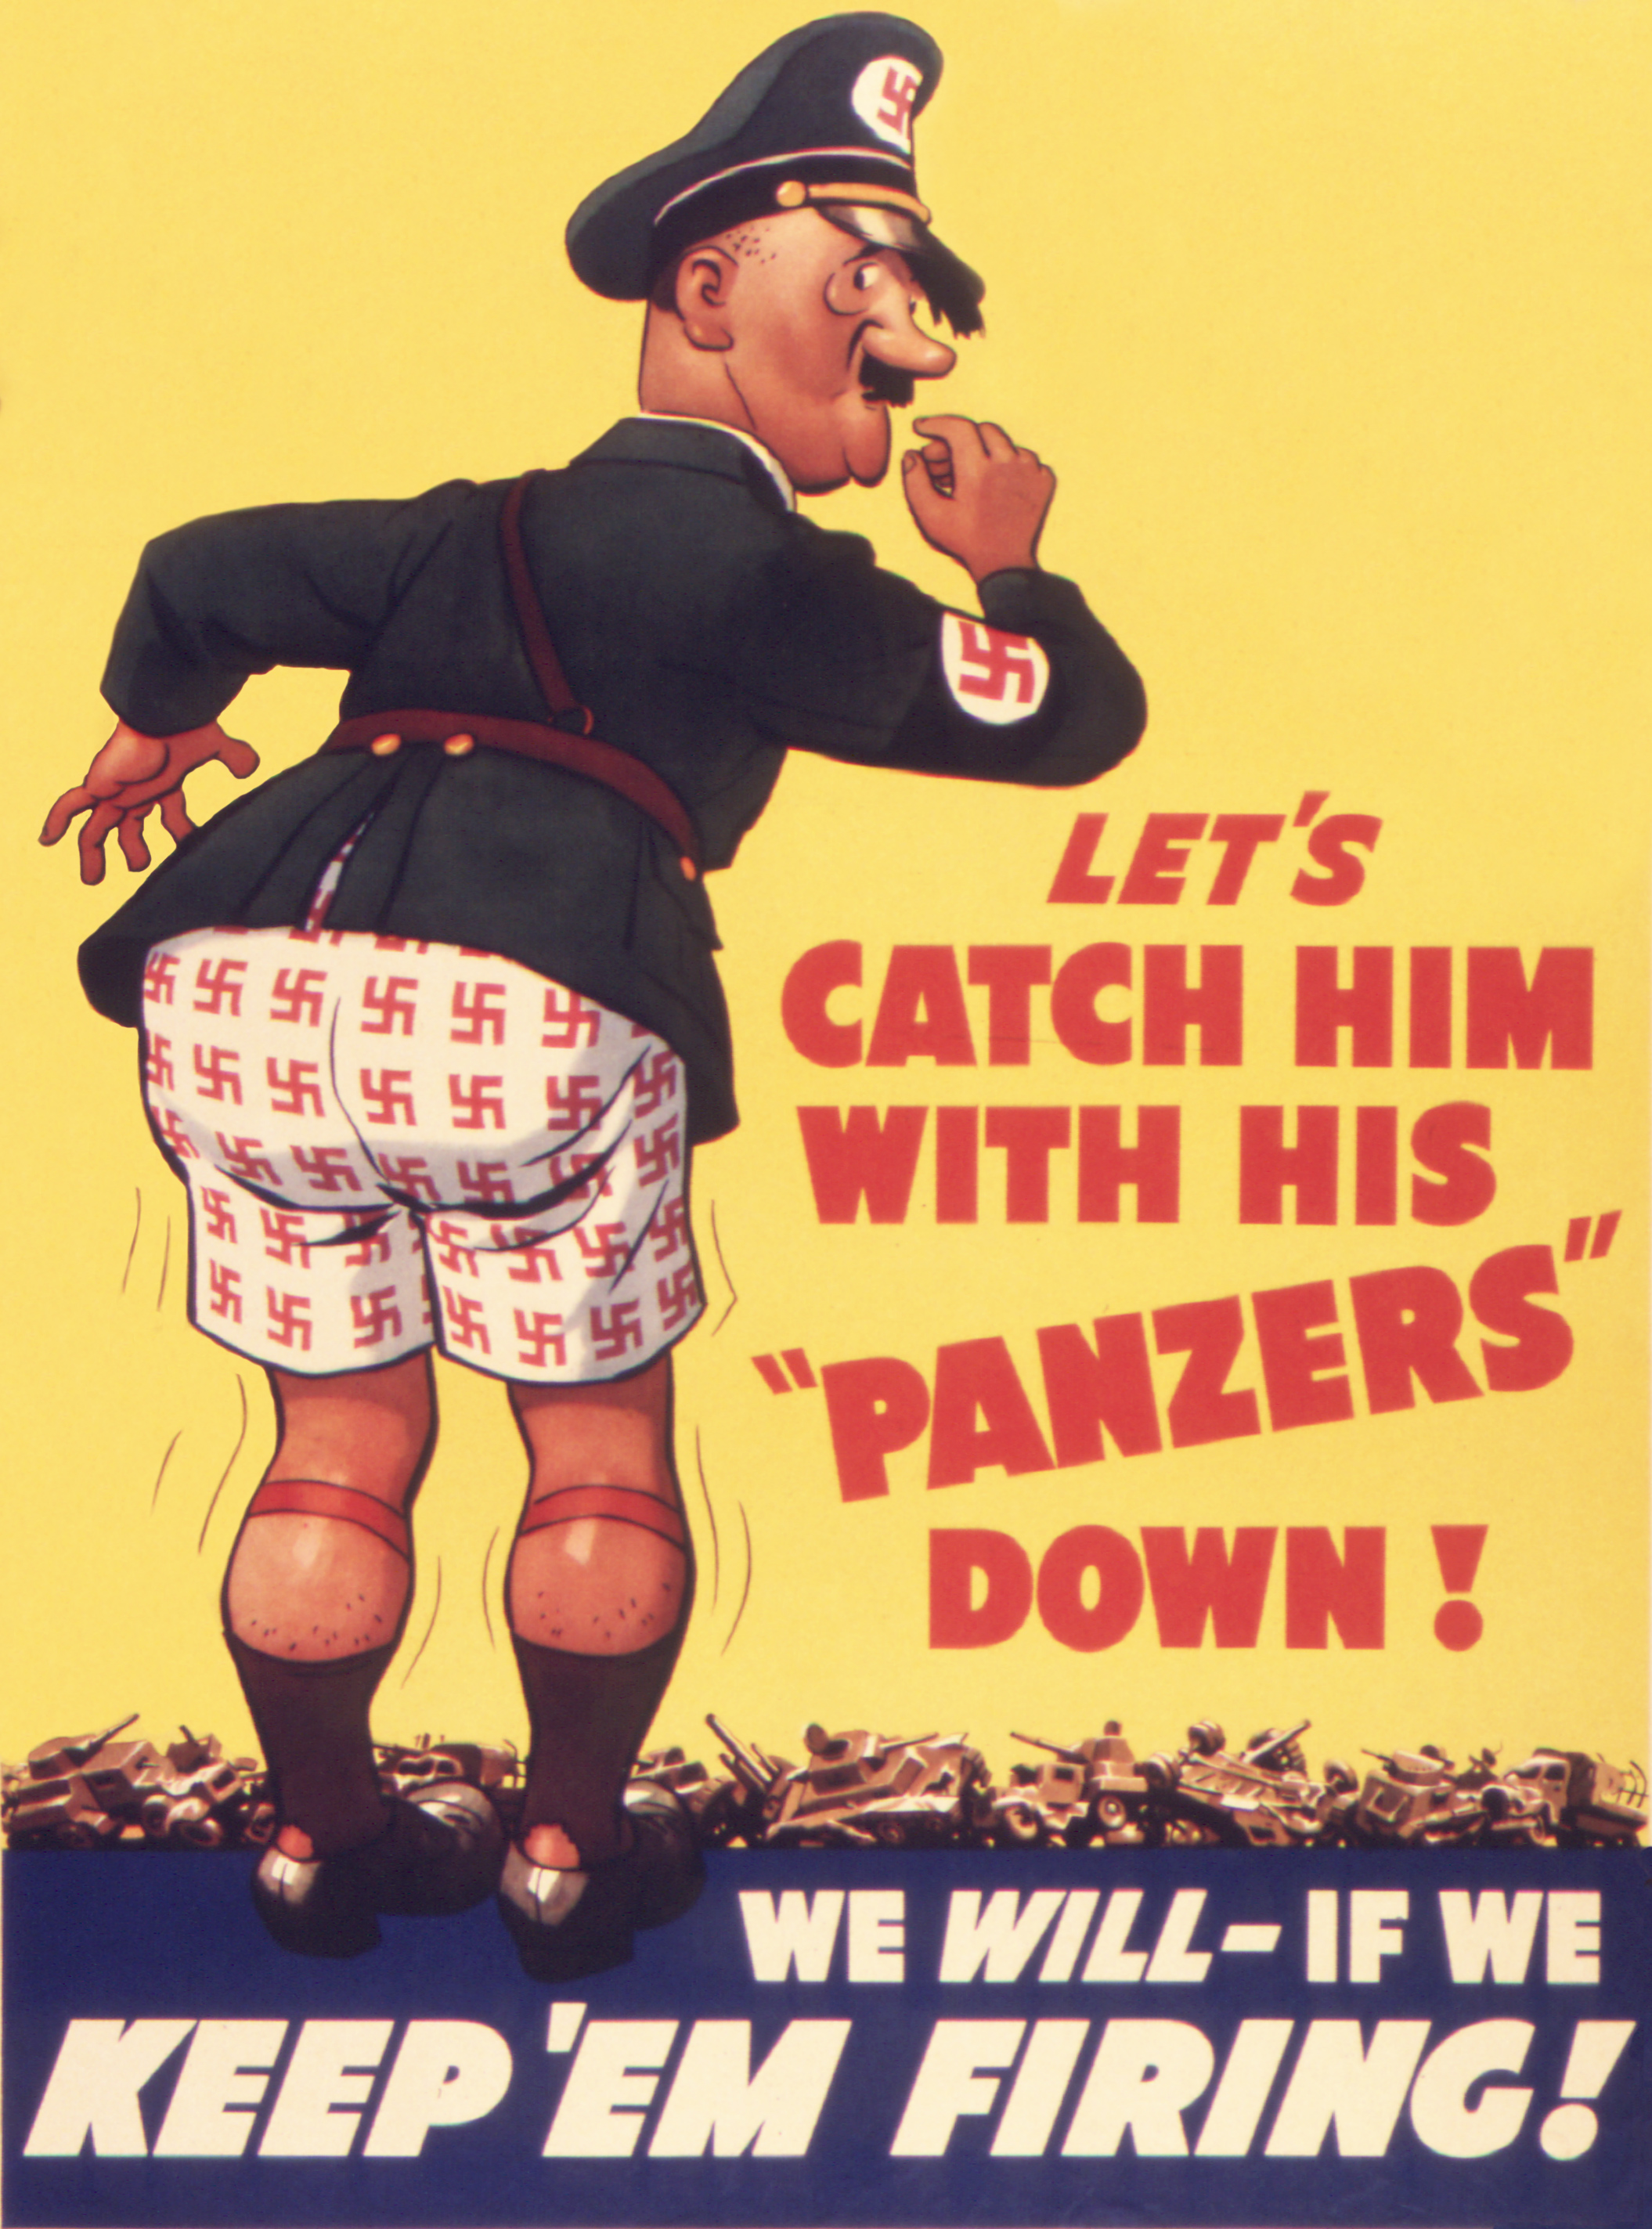 http://upload.wikimedia.org/wikipedia/commons/7/77/Ww2_poster_oct0404.jpg